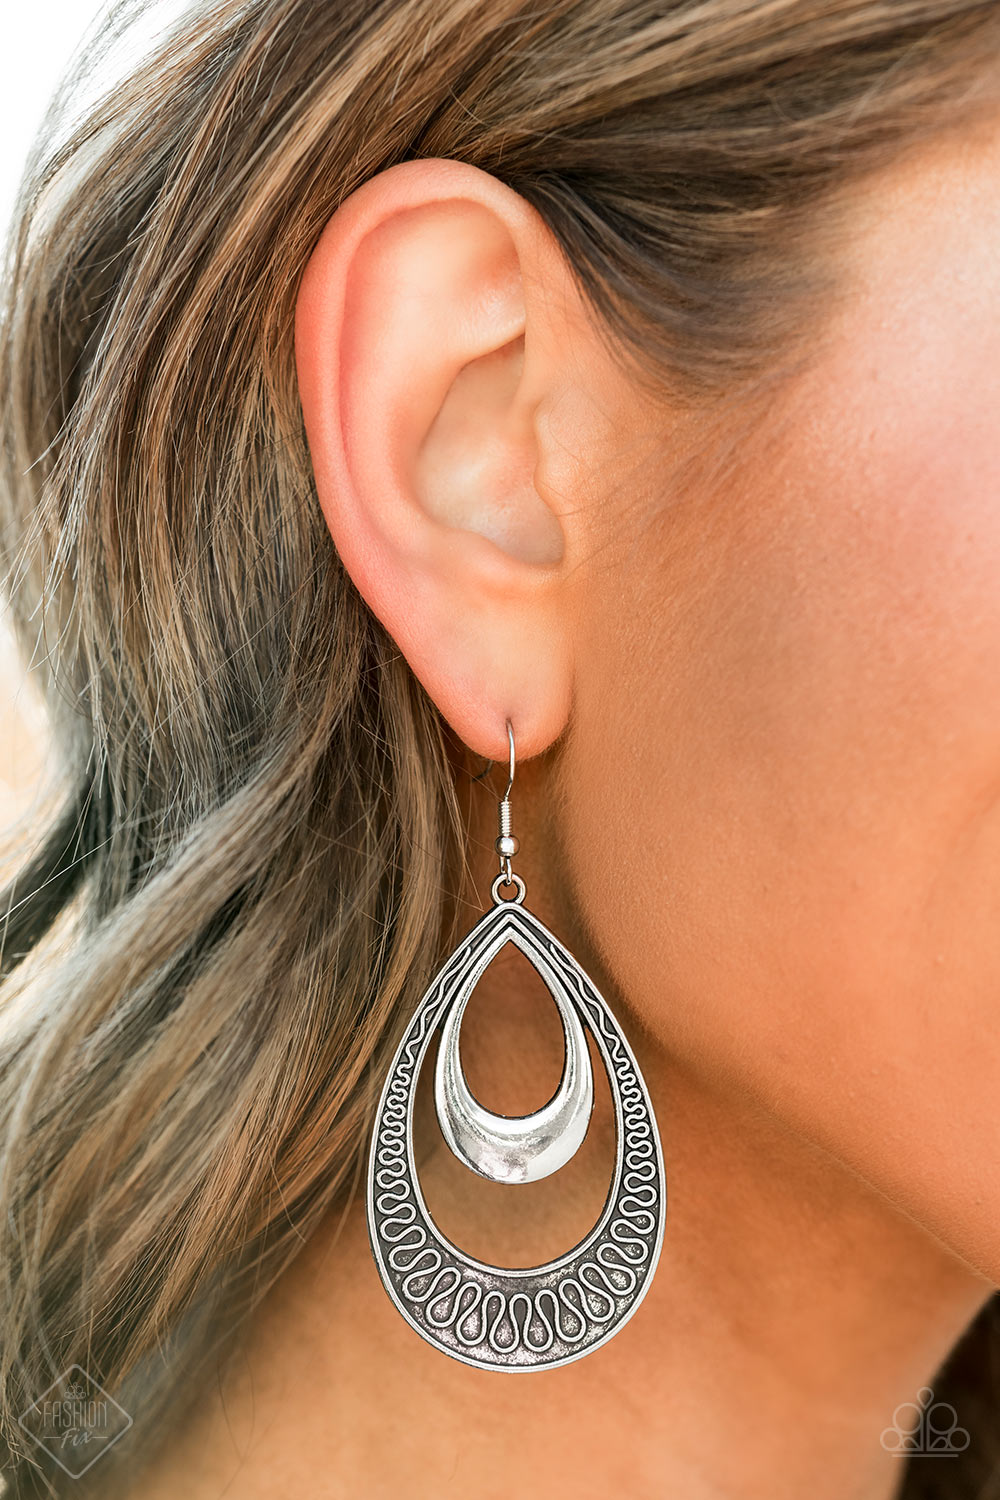 Paparazzi - Sahara Sublime Silver Earrings - Classy Jewels by Linda